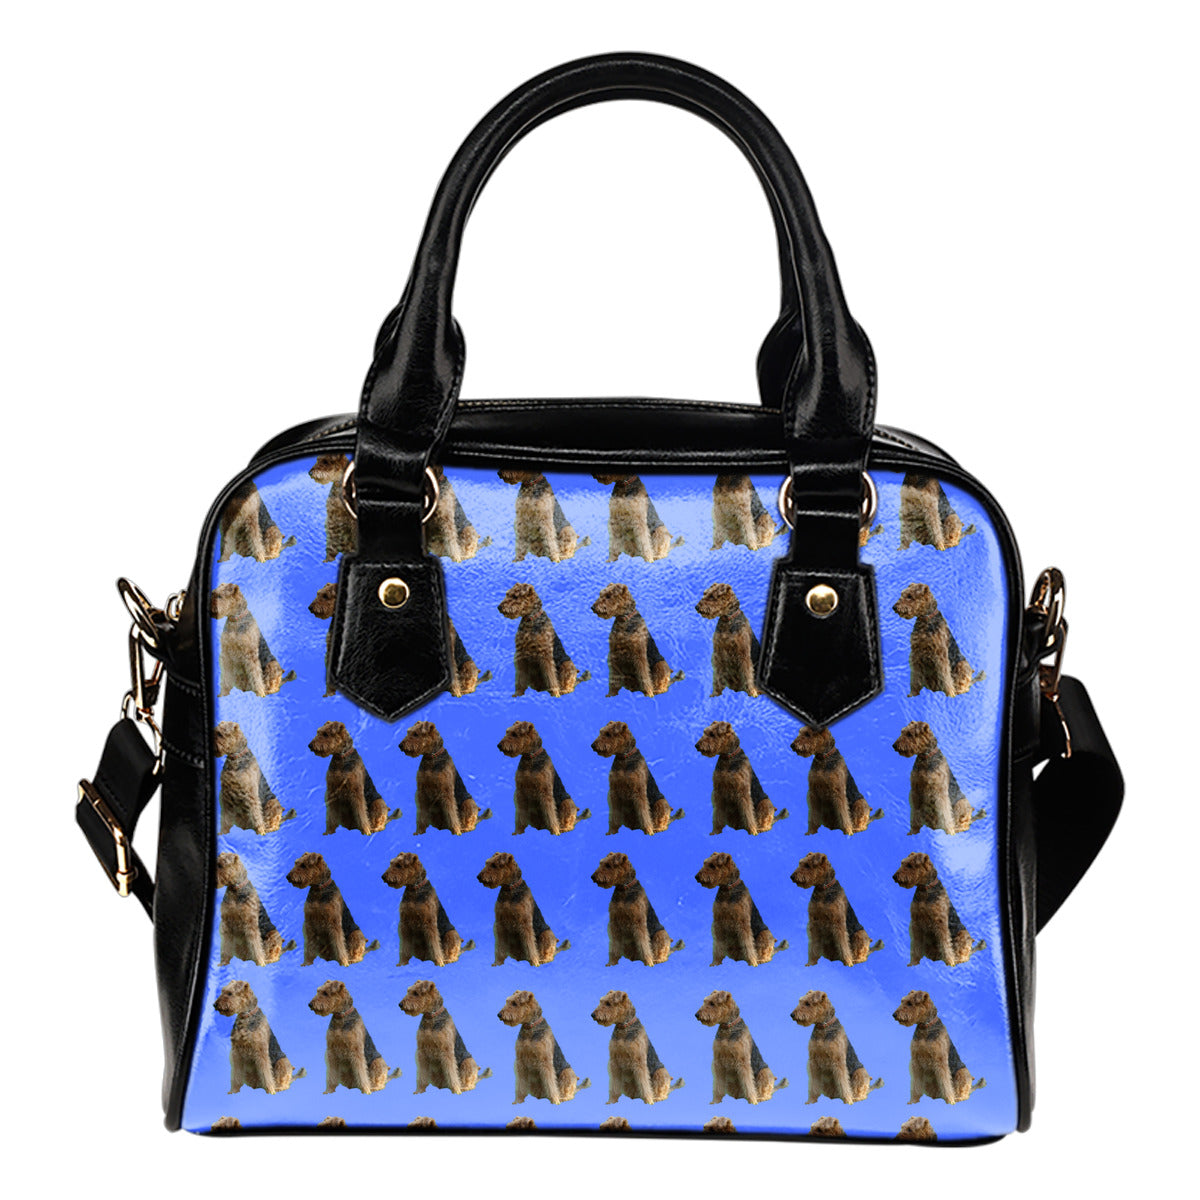 Airedale Terrier Shoulder Bag